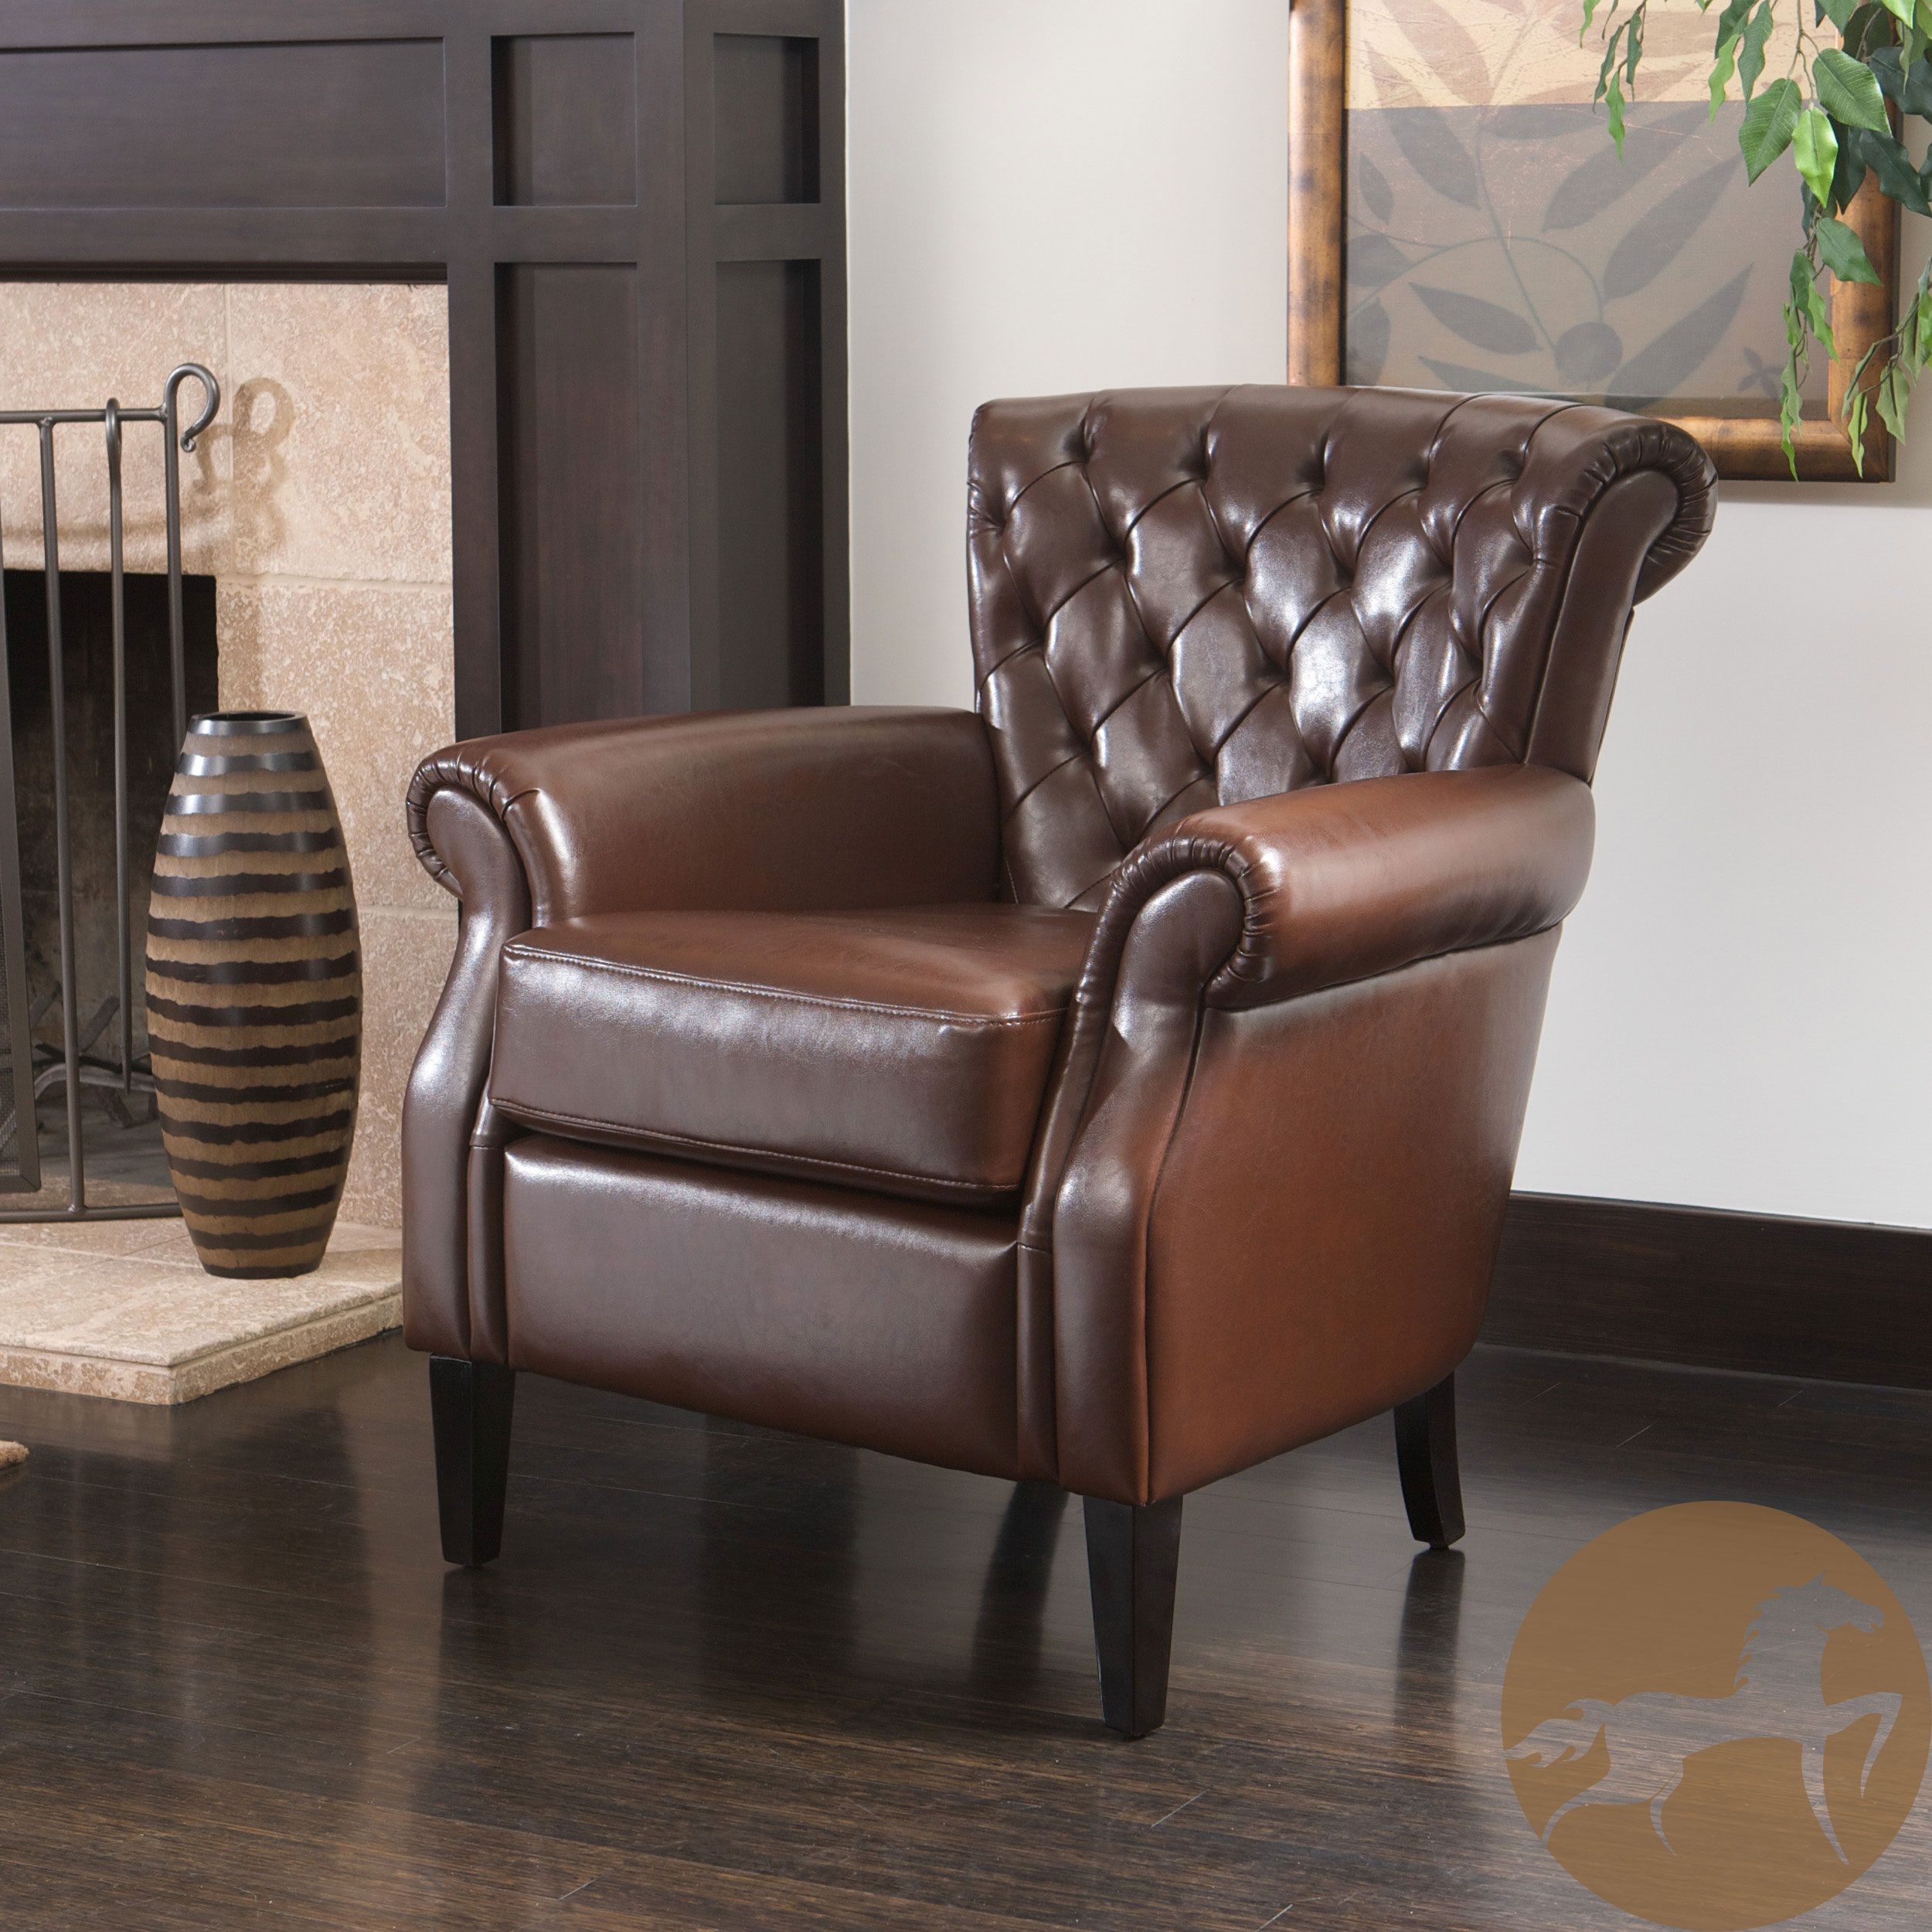 Franklin midcentury modern tufted club chair with rolled